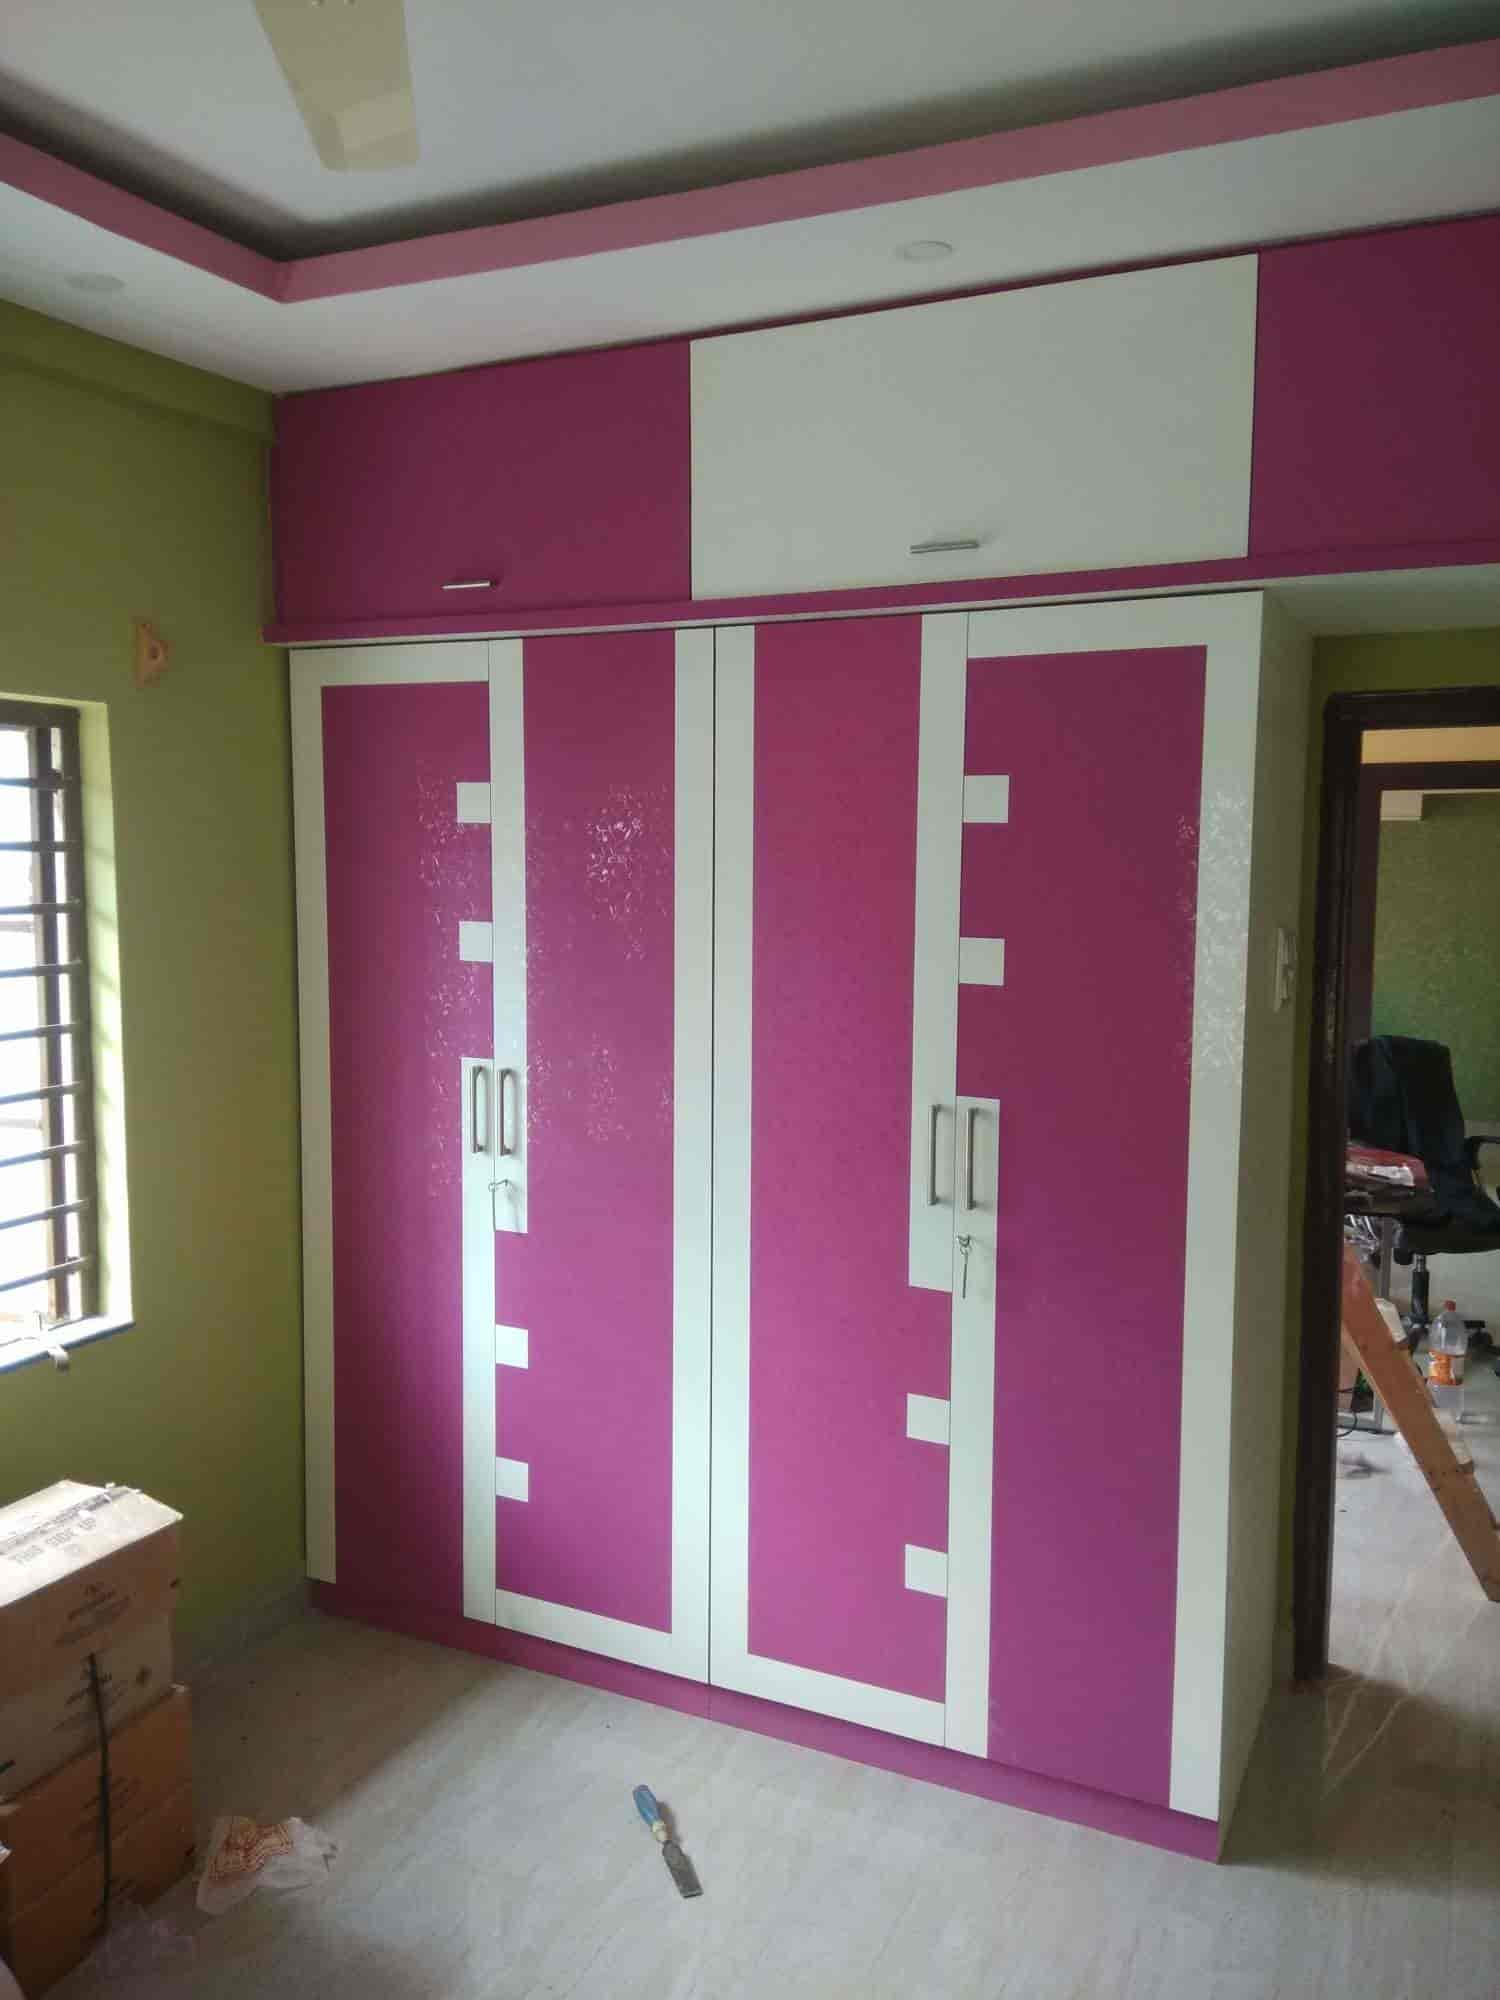 Ss interior decoration photos dum dum kolkata interior designers